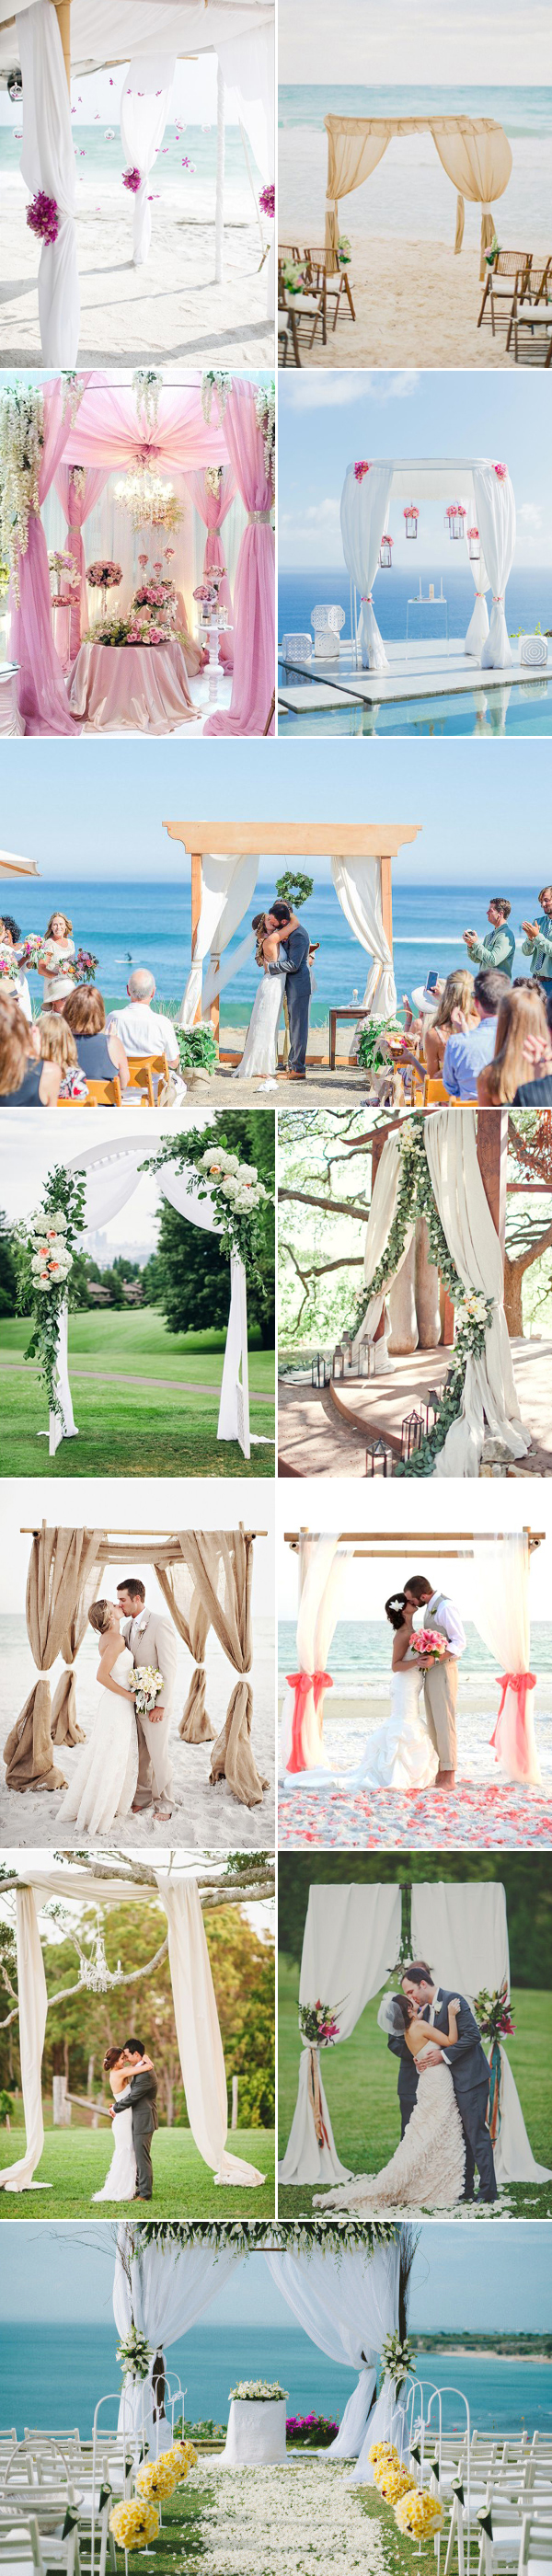 50 Beautiful Wedding Arch Decoration Ideas - Praise Wedding